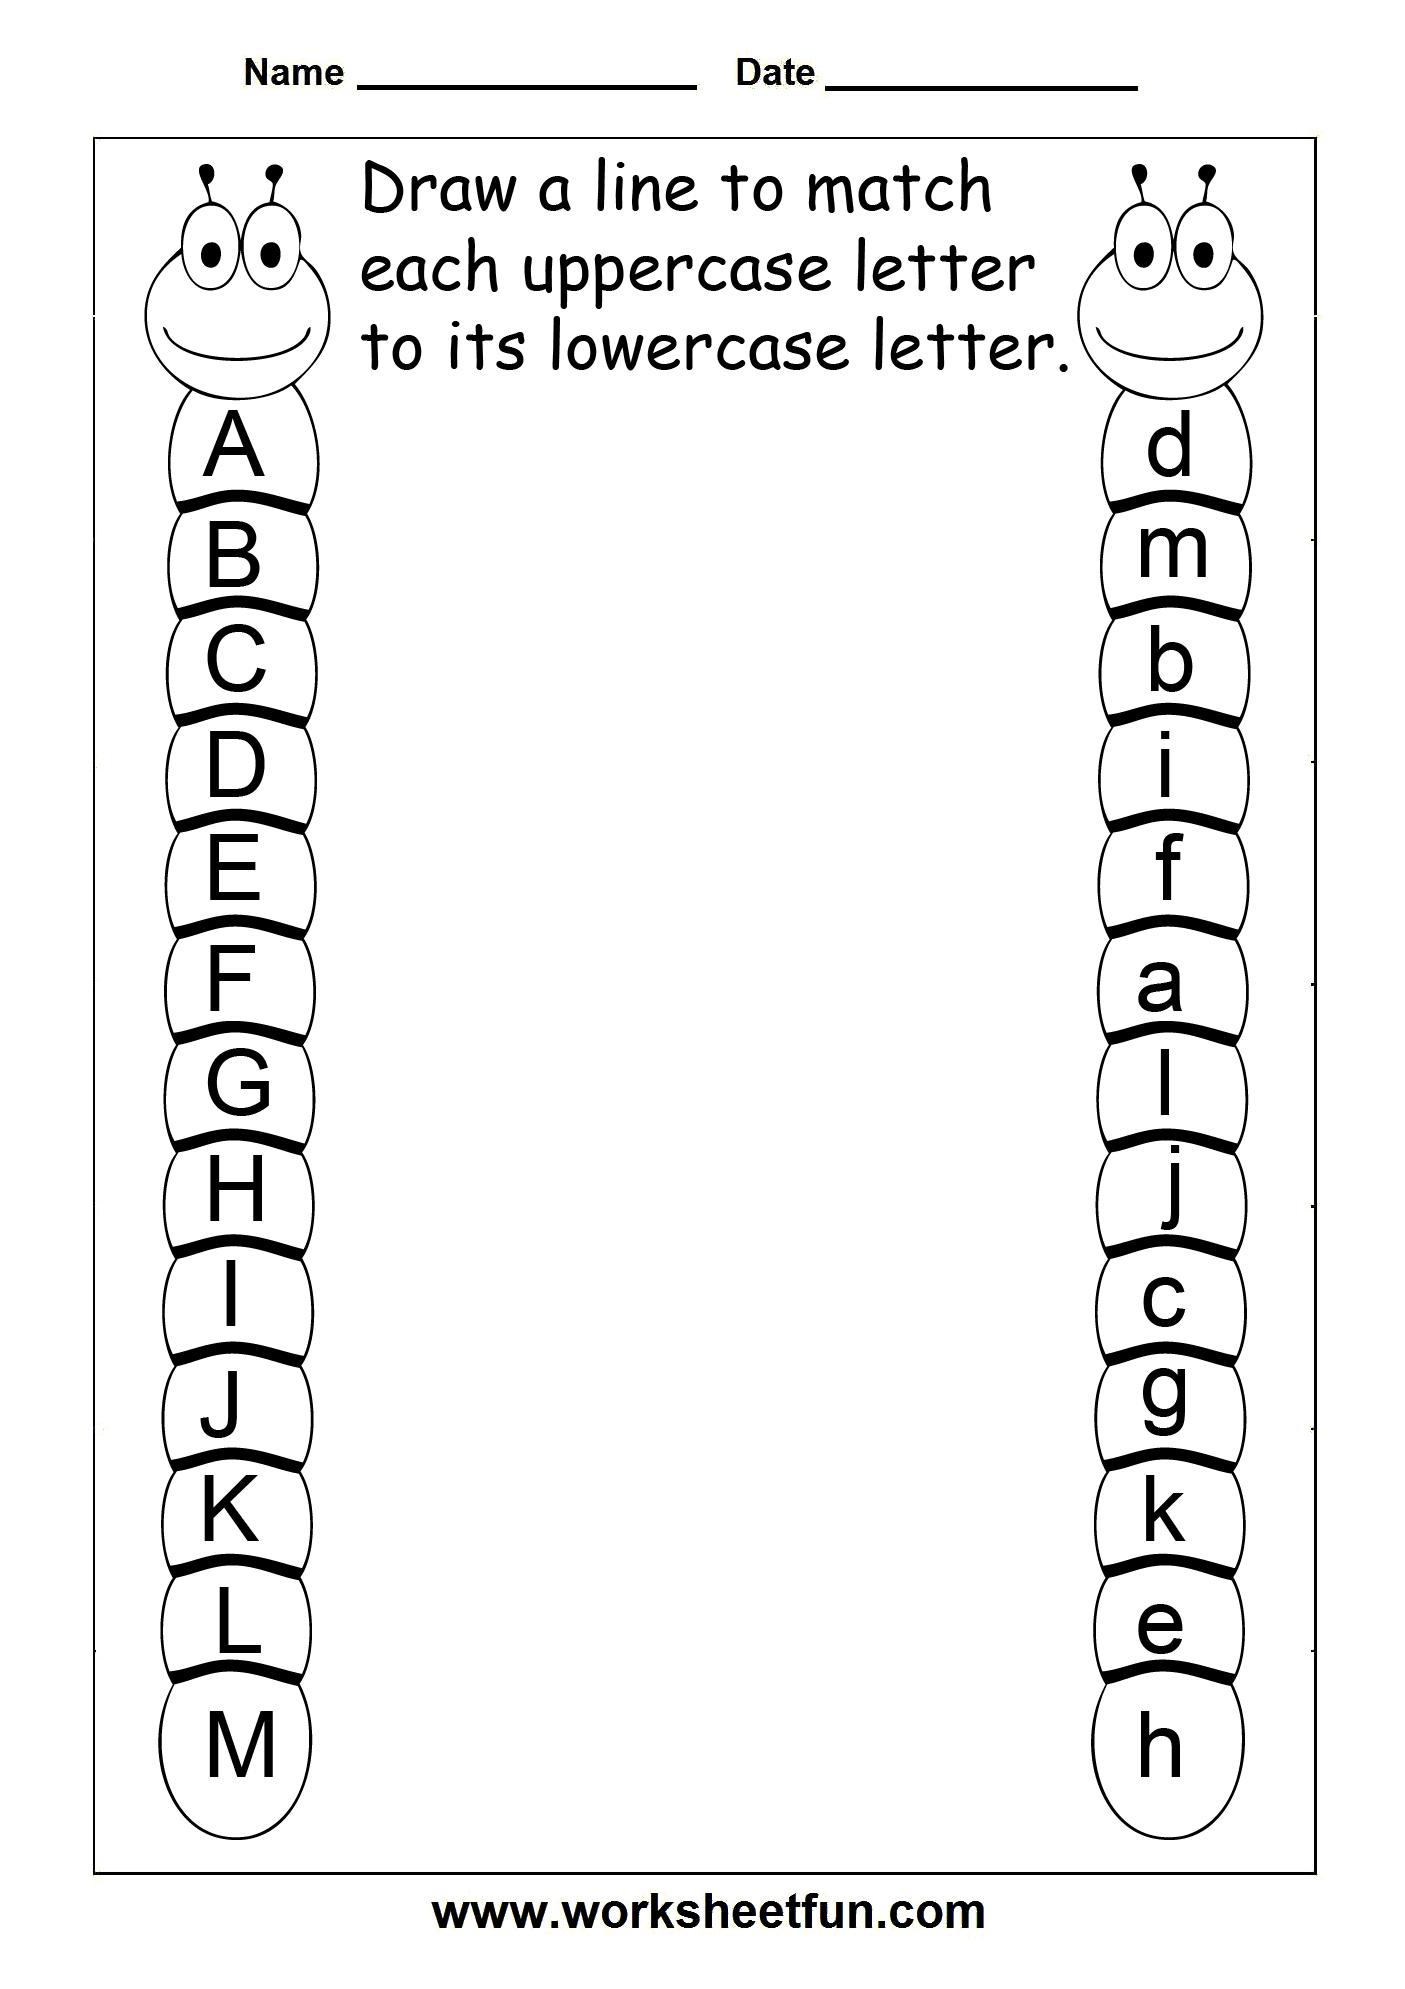 Weirdmailus  Marvellous  Images About Work Worksheet On Pinterest  Hidden Pictures  With Gorgeous  Images About Work Worksheet On Pinterest  Hidden Pictures Color By Numbers And Puzzles With Charming Proportional Word Problems Worksheet Also Monster Math Worksheets In Addition Multiplying By  Worksheets And Intermediate Algebra Worksheets With Answers As Well As Mitosis Quiz Worksheet Additionally Self Respect Worksheets From Pinterestcom With Weirdmailus  Gorgeous  Images About Work Worksheet On Pinterest  Hidden Pictures  With Charming  Images About Work Worksheet On Pinterest  Hidden Pictures Color By Numbers And Puzzles And Marvellous Proportional Word Problems Worksheet Also Monster Math Worksheets In Addition Multiplying By  Worksheets From Pinterestcom